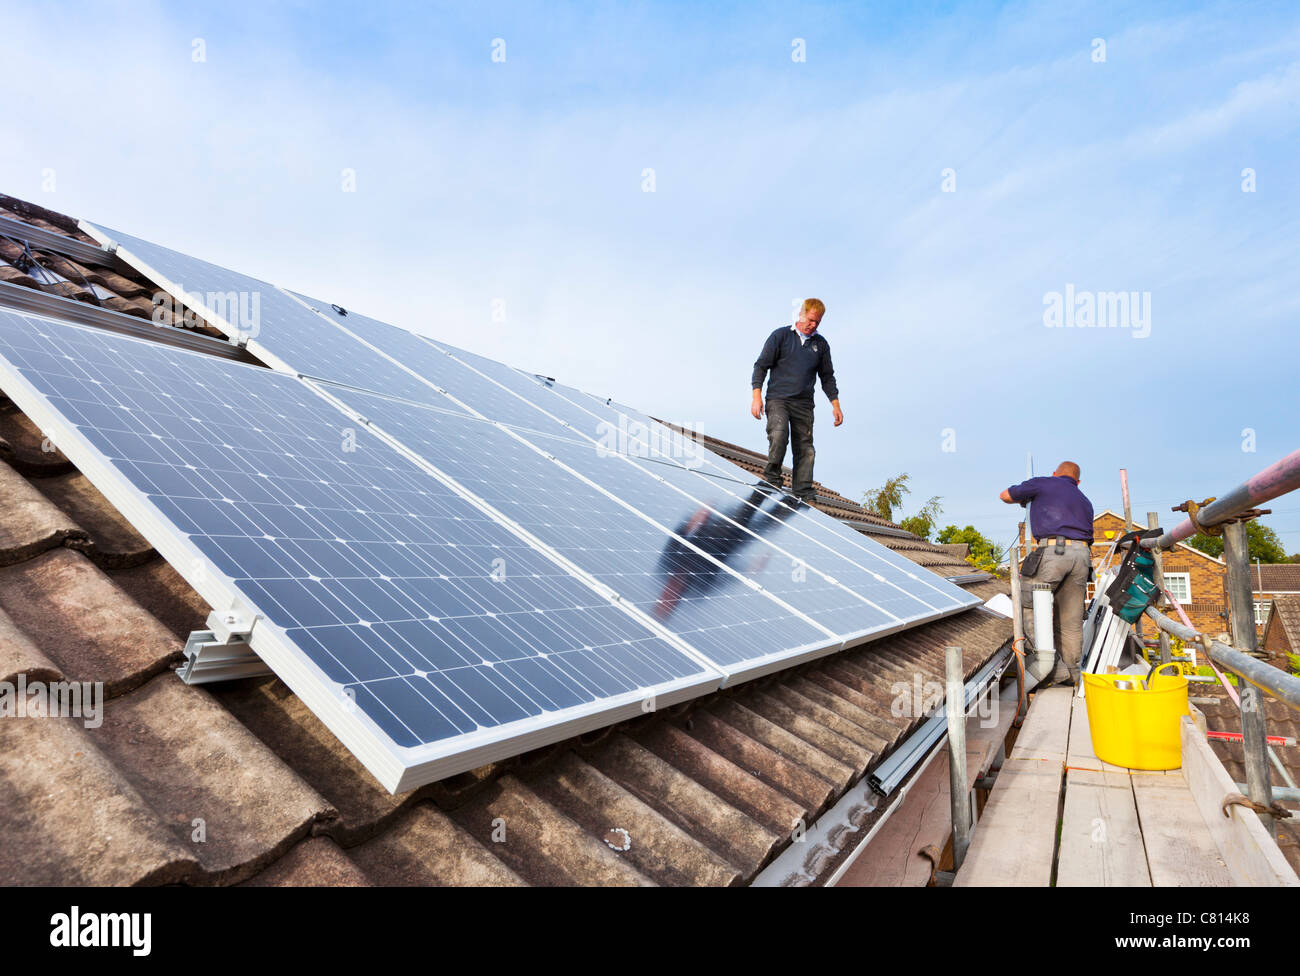 fitting solar panels on detached house roof england uk gb eu europe - Stock Image